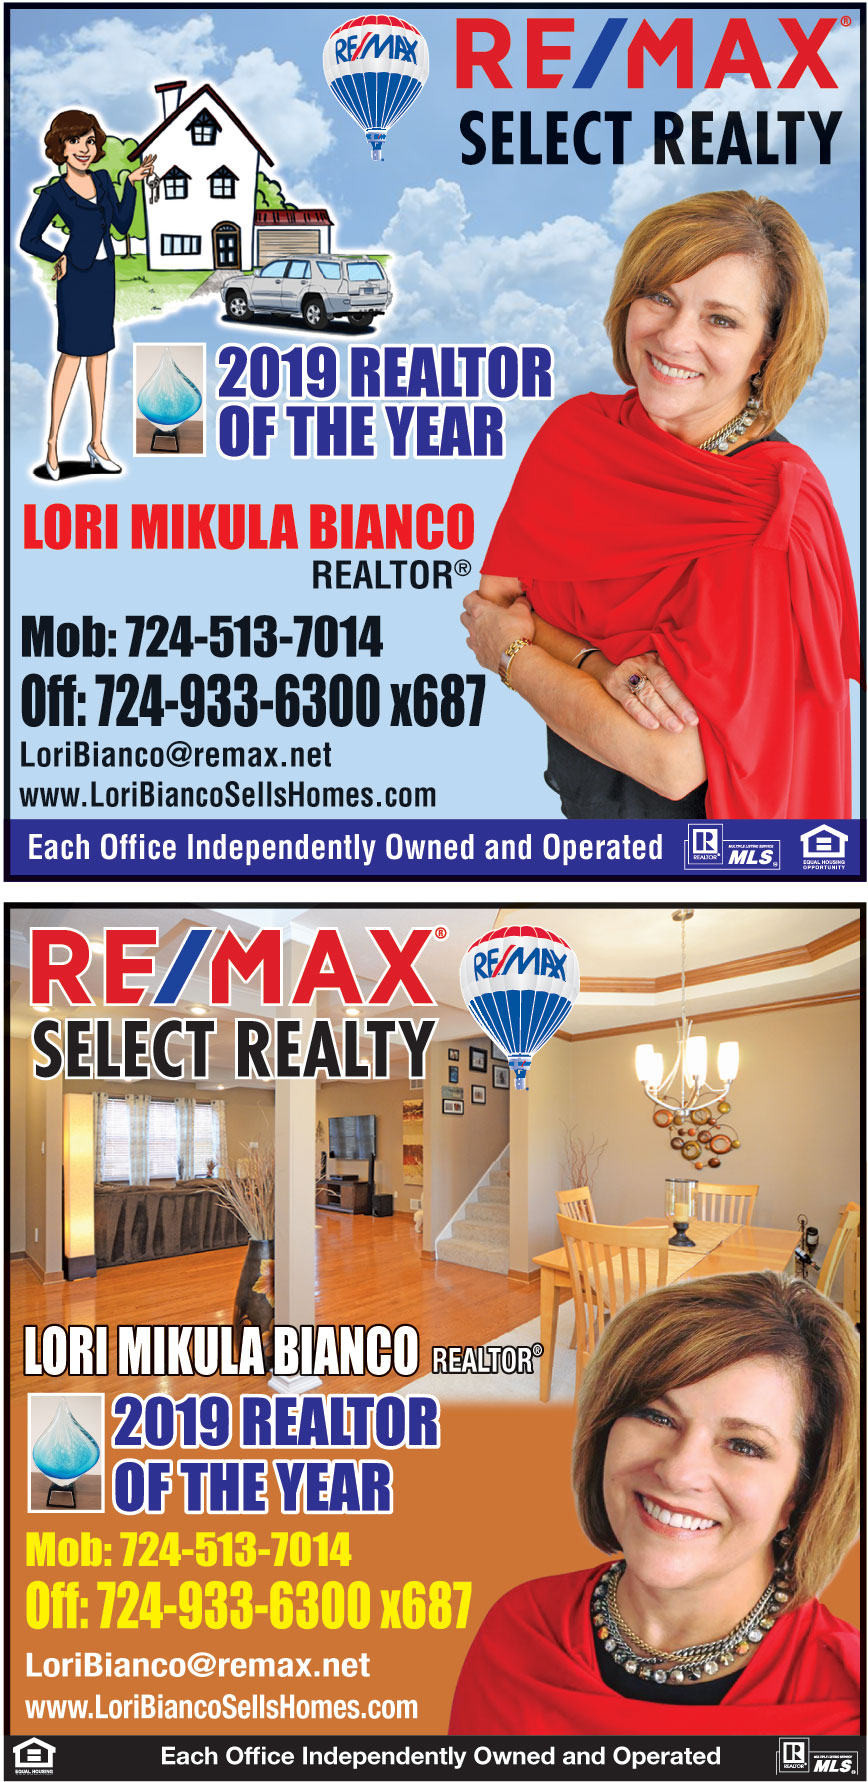 REMAX SELECT REALTY